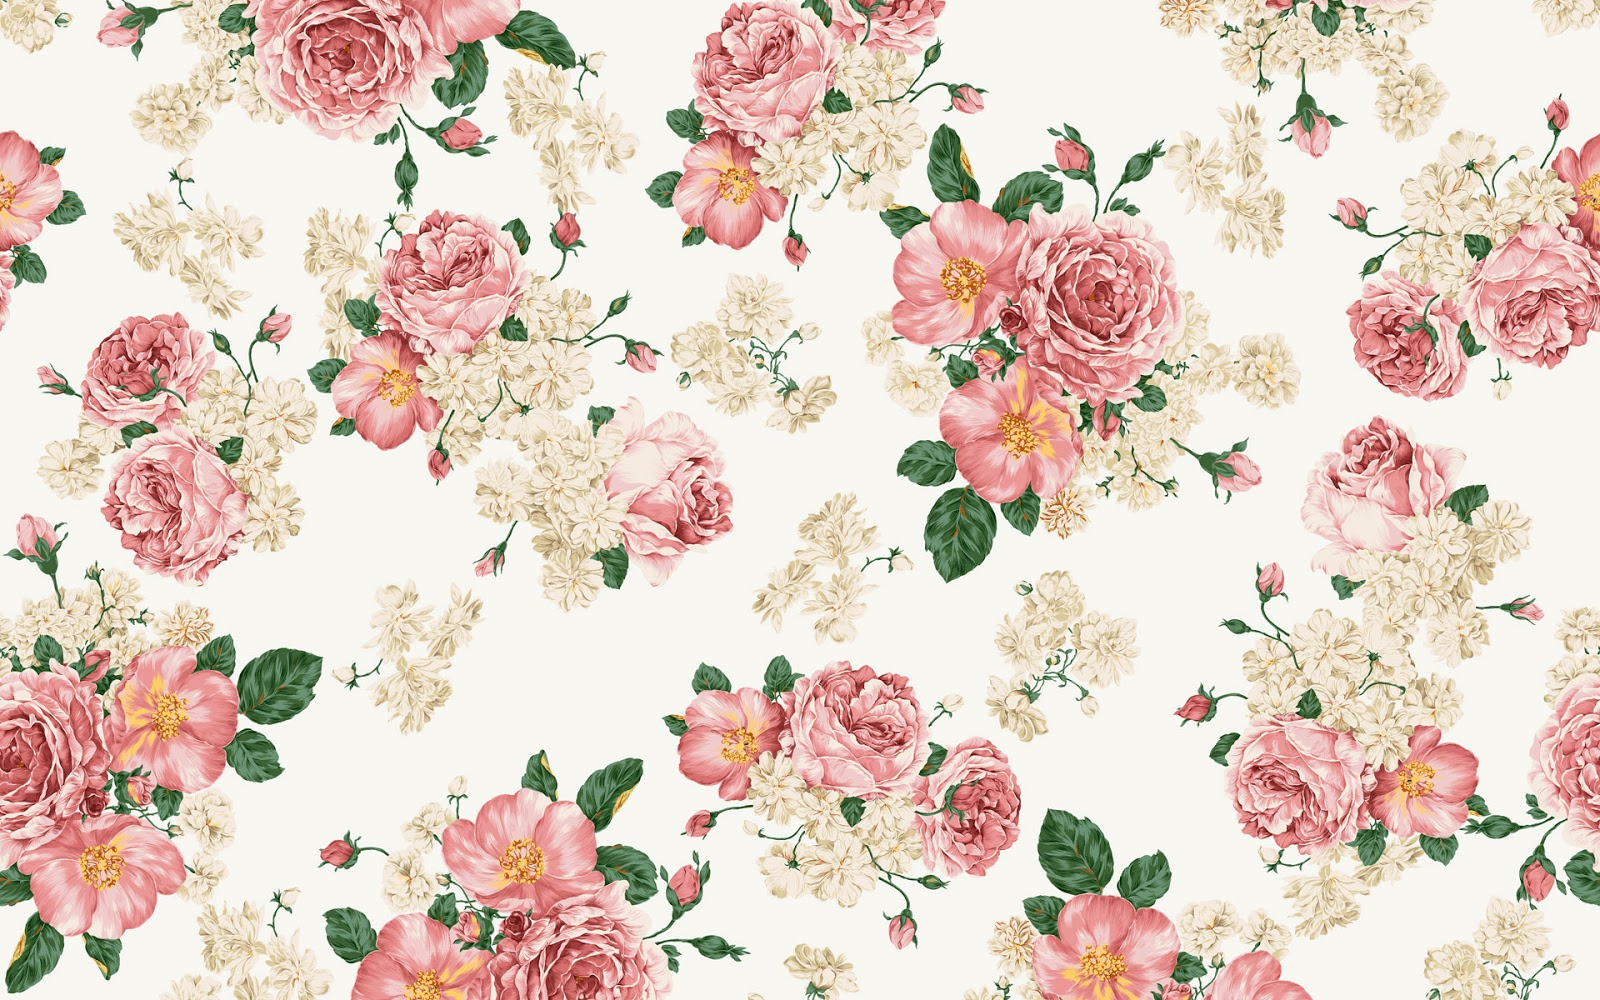 Free Download Vintage Floral Wallpaper Pattern 1600x1000 For